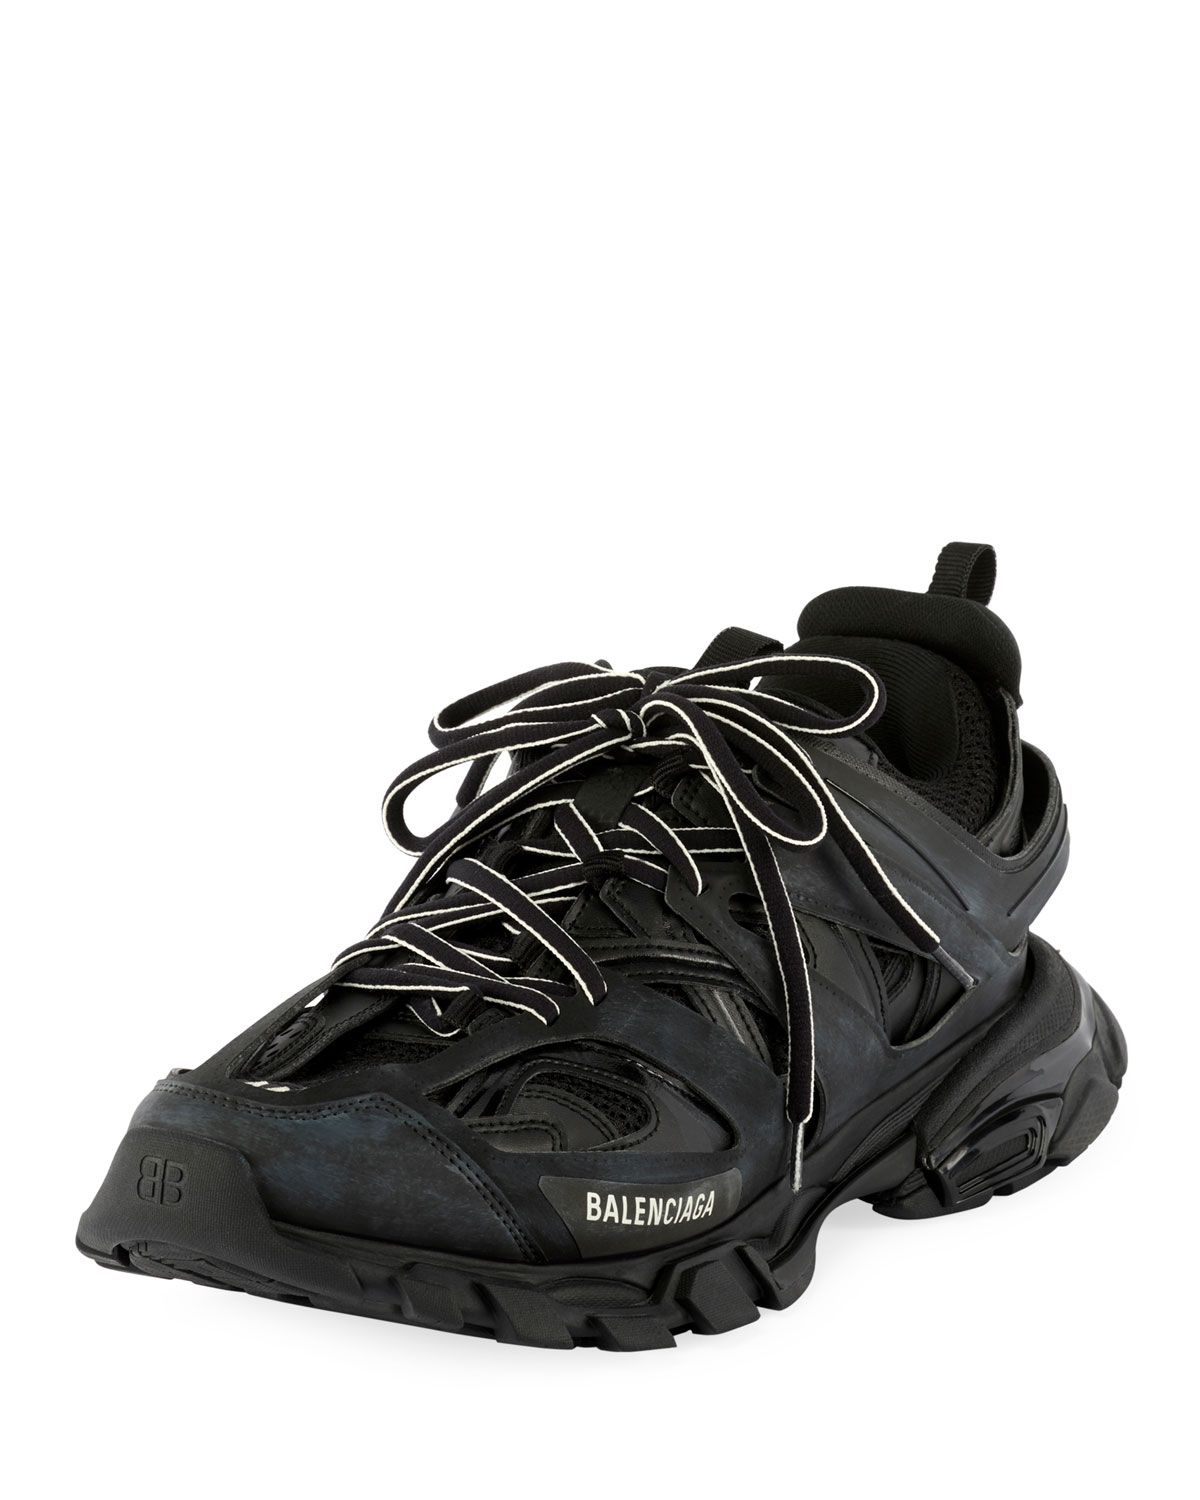 check out 367e8 9b328 BALENCIAGA MEN S TRACK RUNNING SNEAKERS, BLACK.  balenciaga  shoes